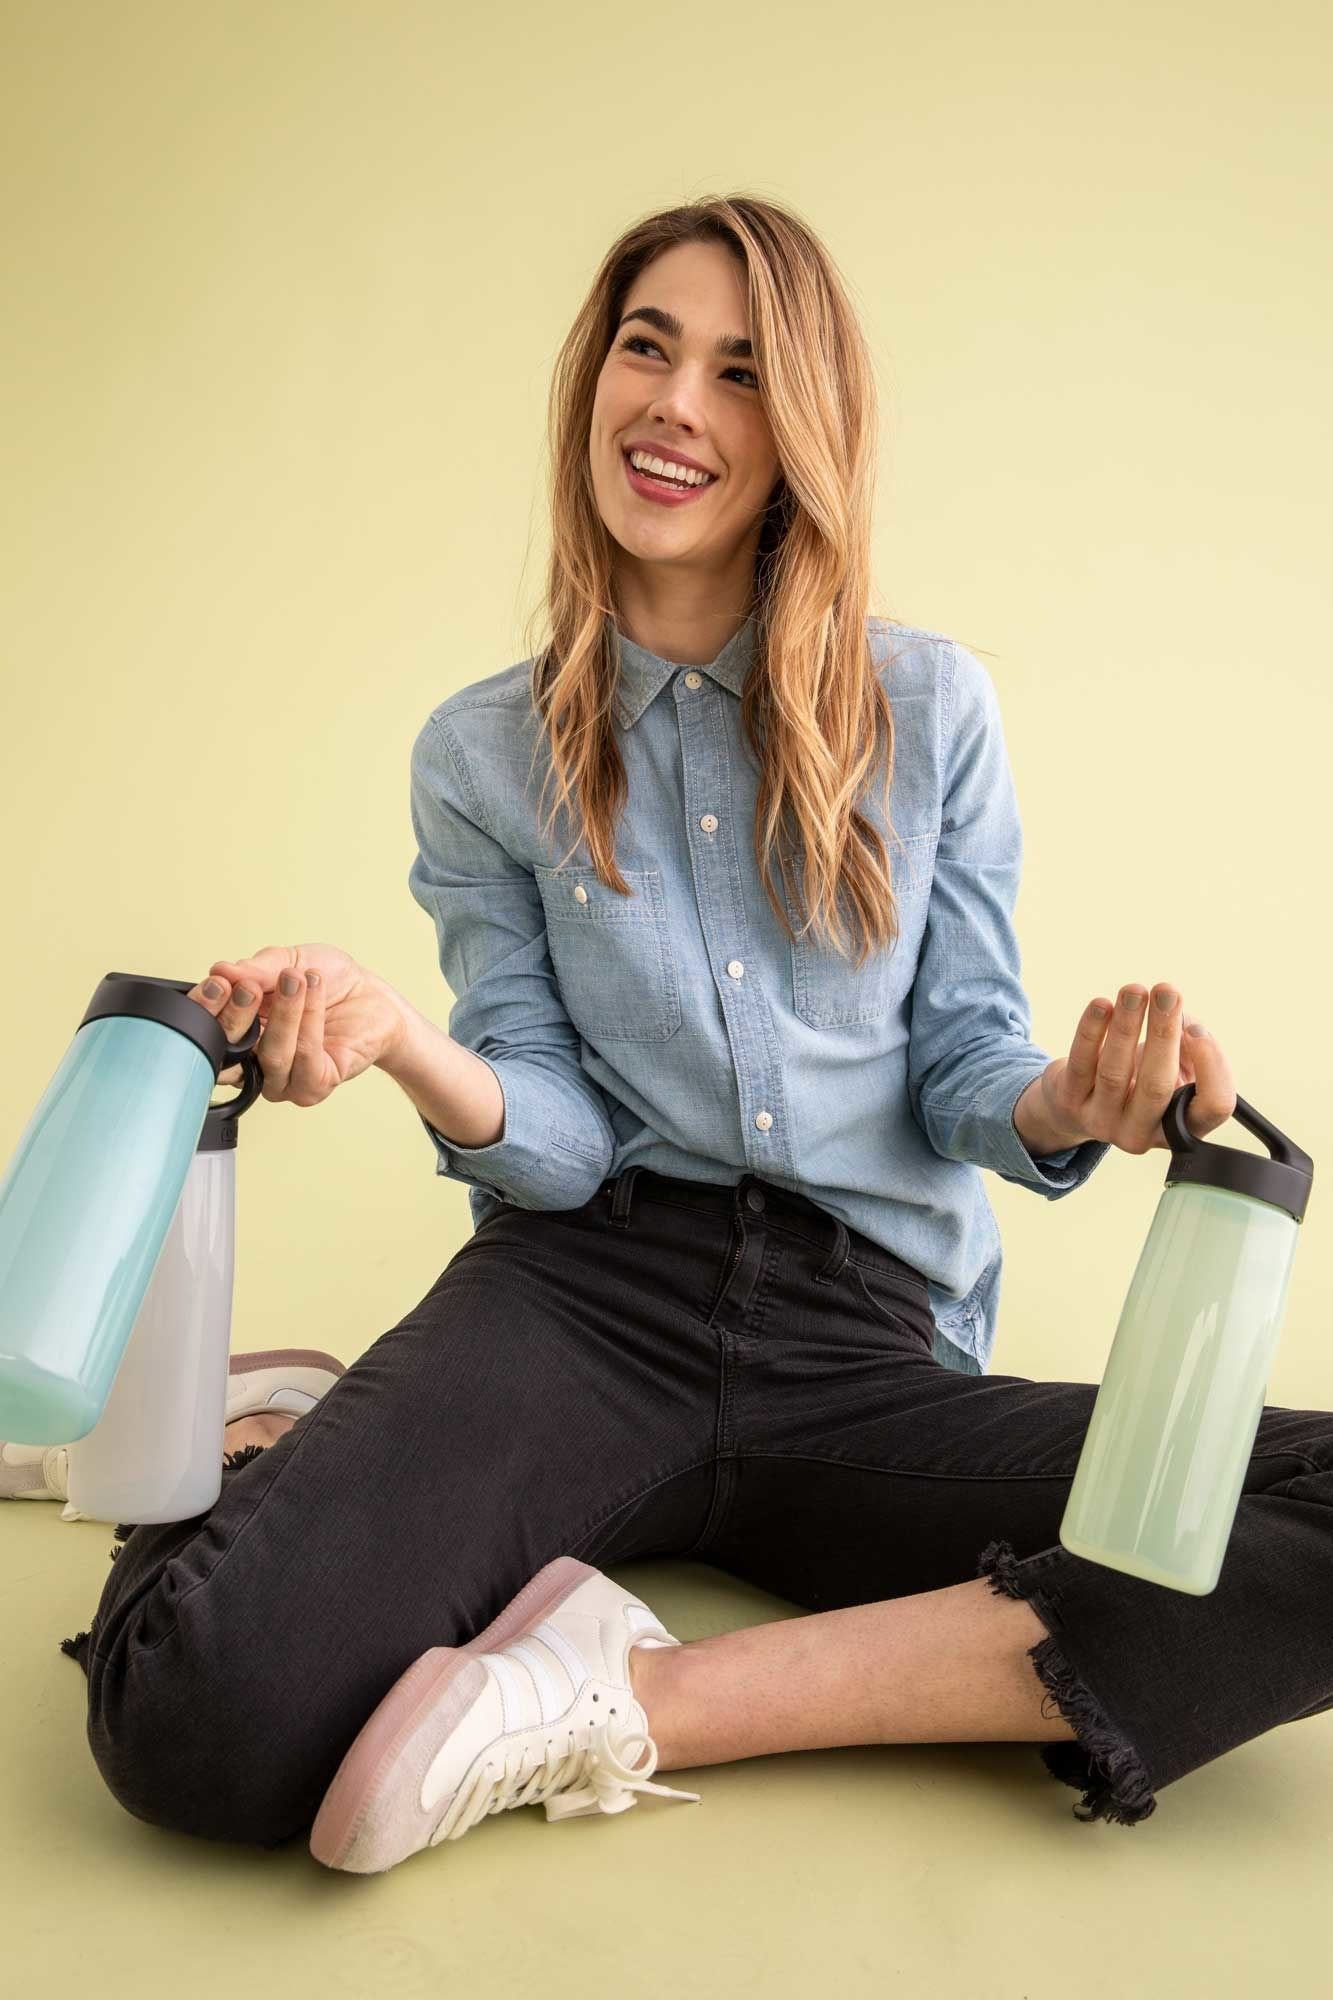 Model holding three different colored water bottles